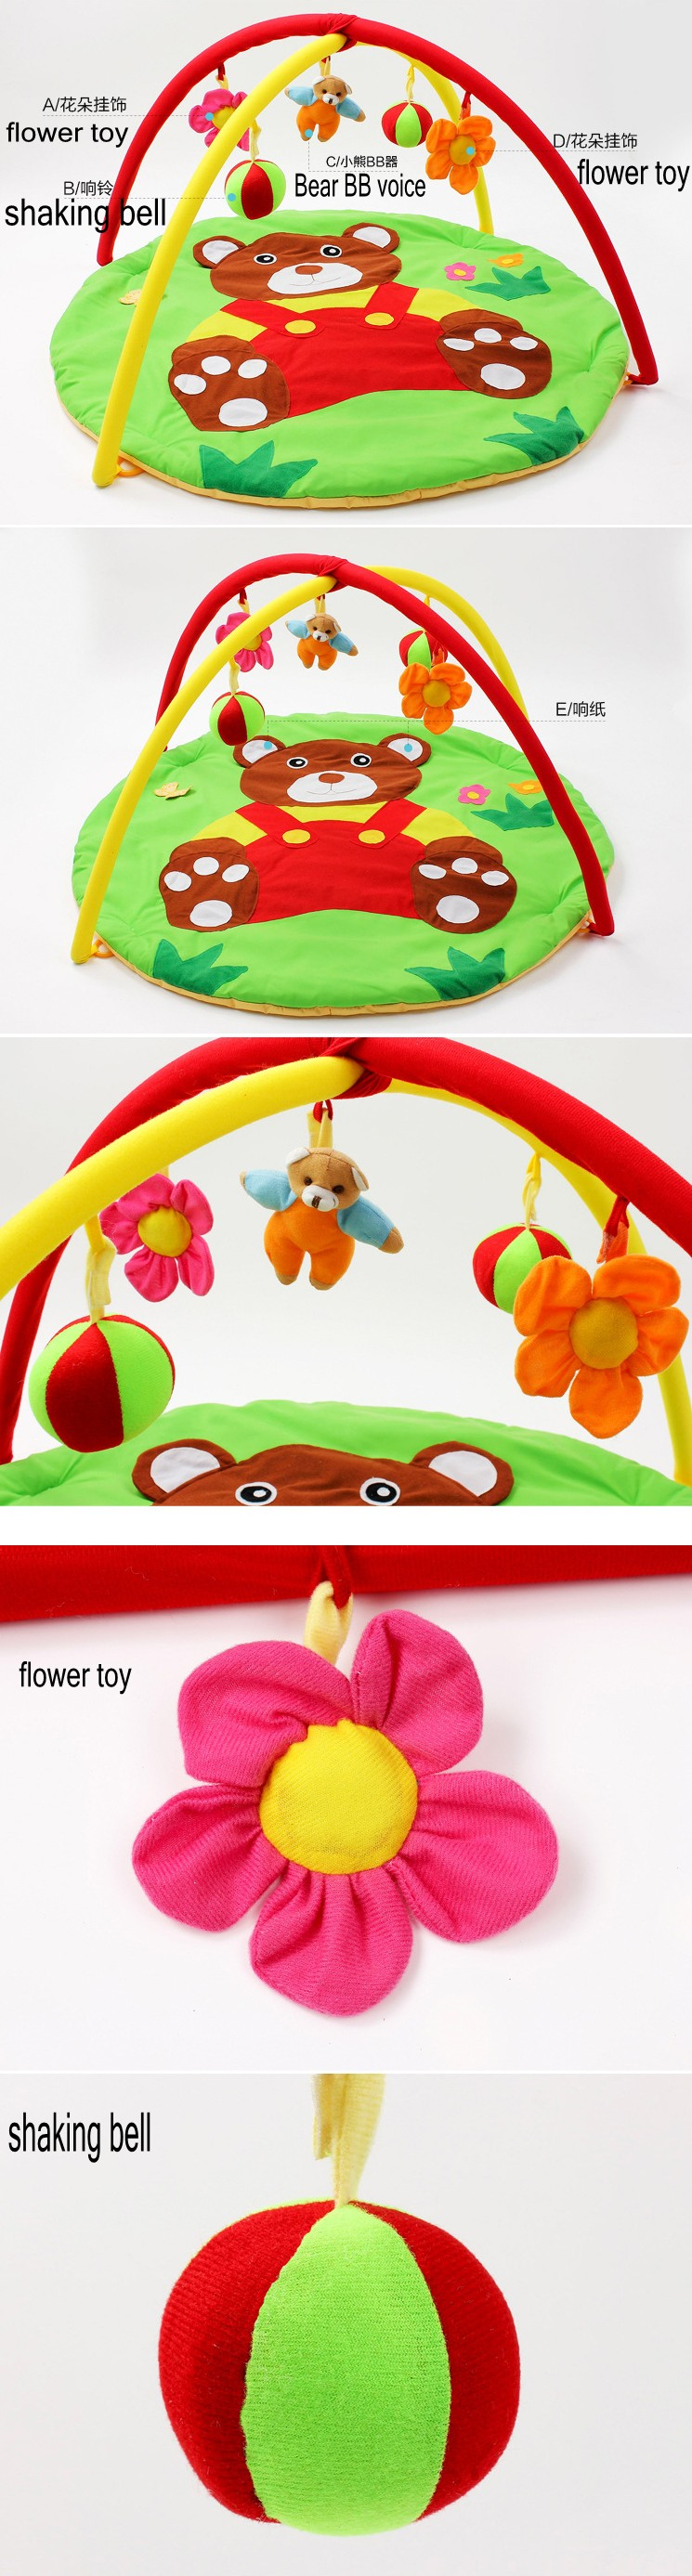 Fun Bear Baby Toy Baby Kids Play Mats 0-1 Year Indoor Baby Sports Soft Crawling Pad Musical Activity Gym Play Blanket 2